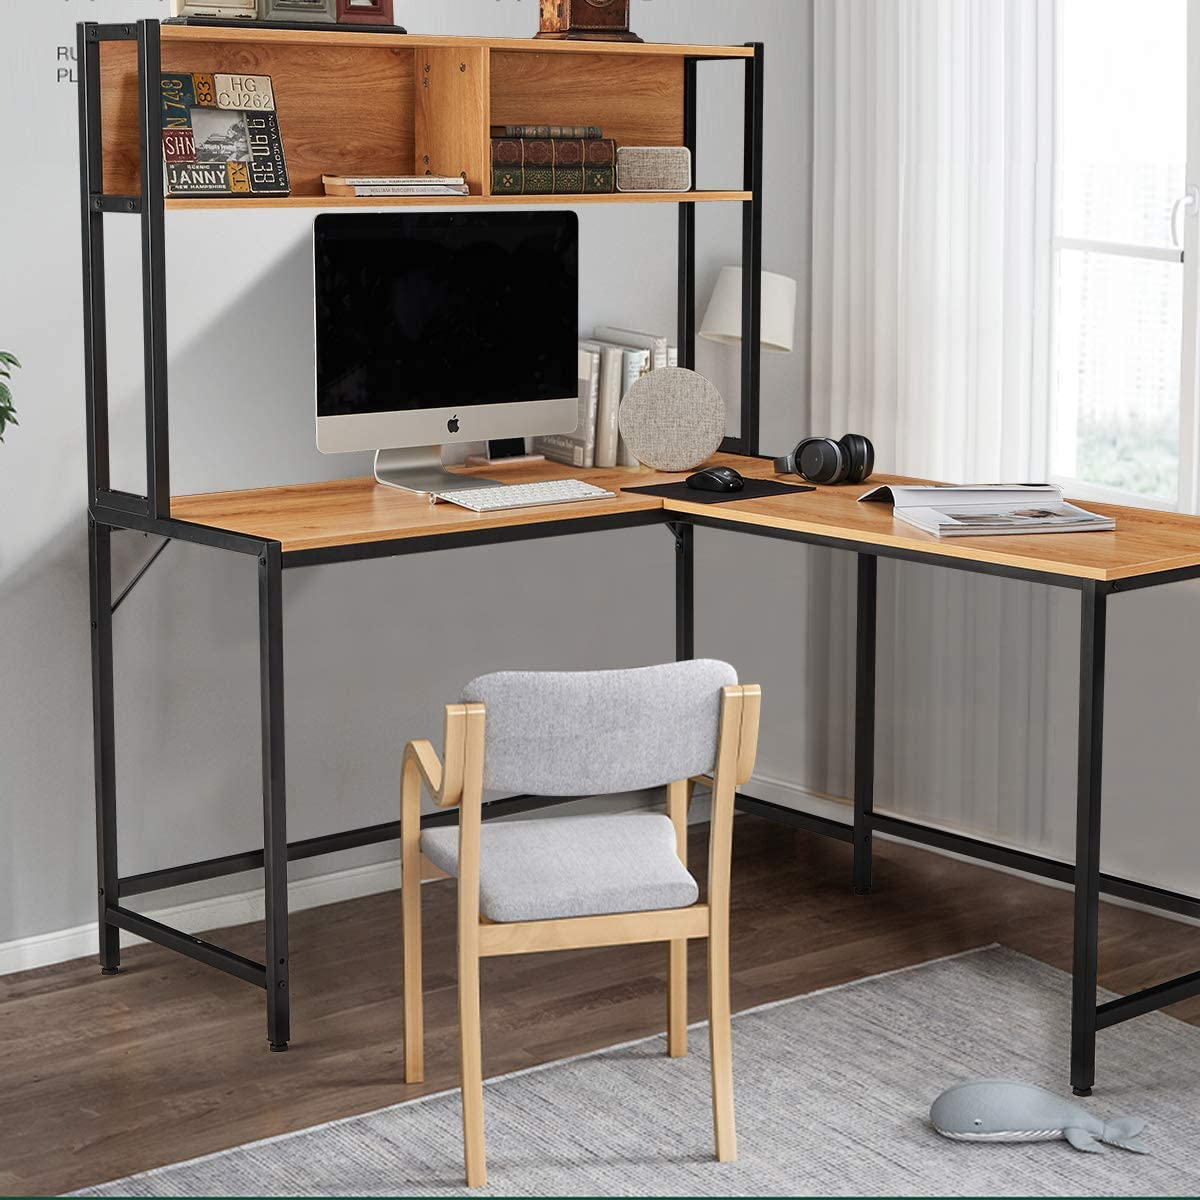 Erommy 55 Inch L Shaped Computer Desk With Hutch Space Saving Corner Desk With Storage Shelves Home Office Desk Study Workstation For Home Office Walmart Com Walmart Com